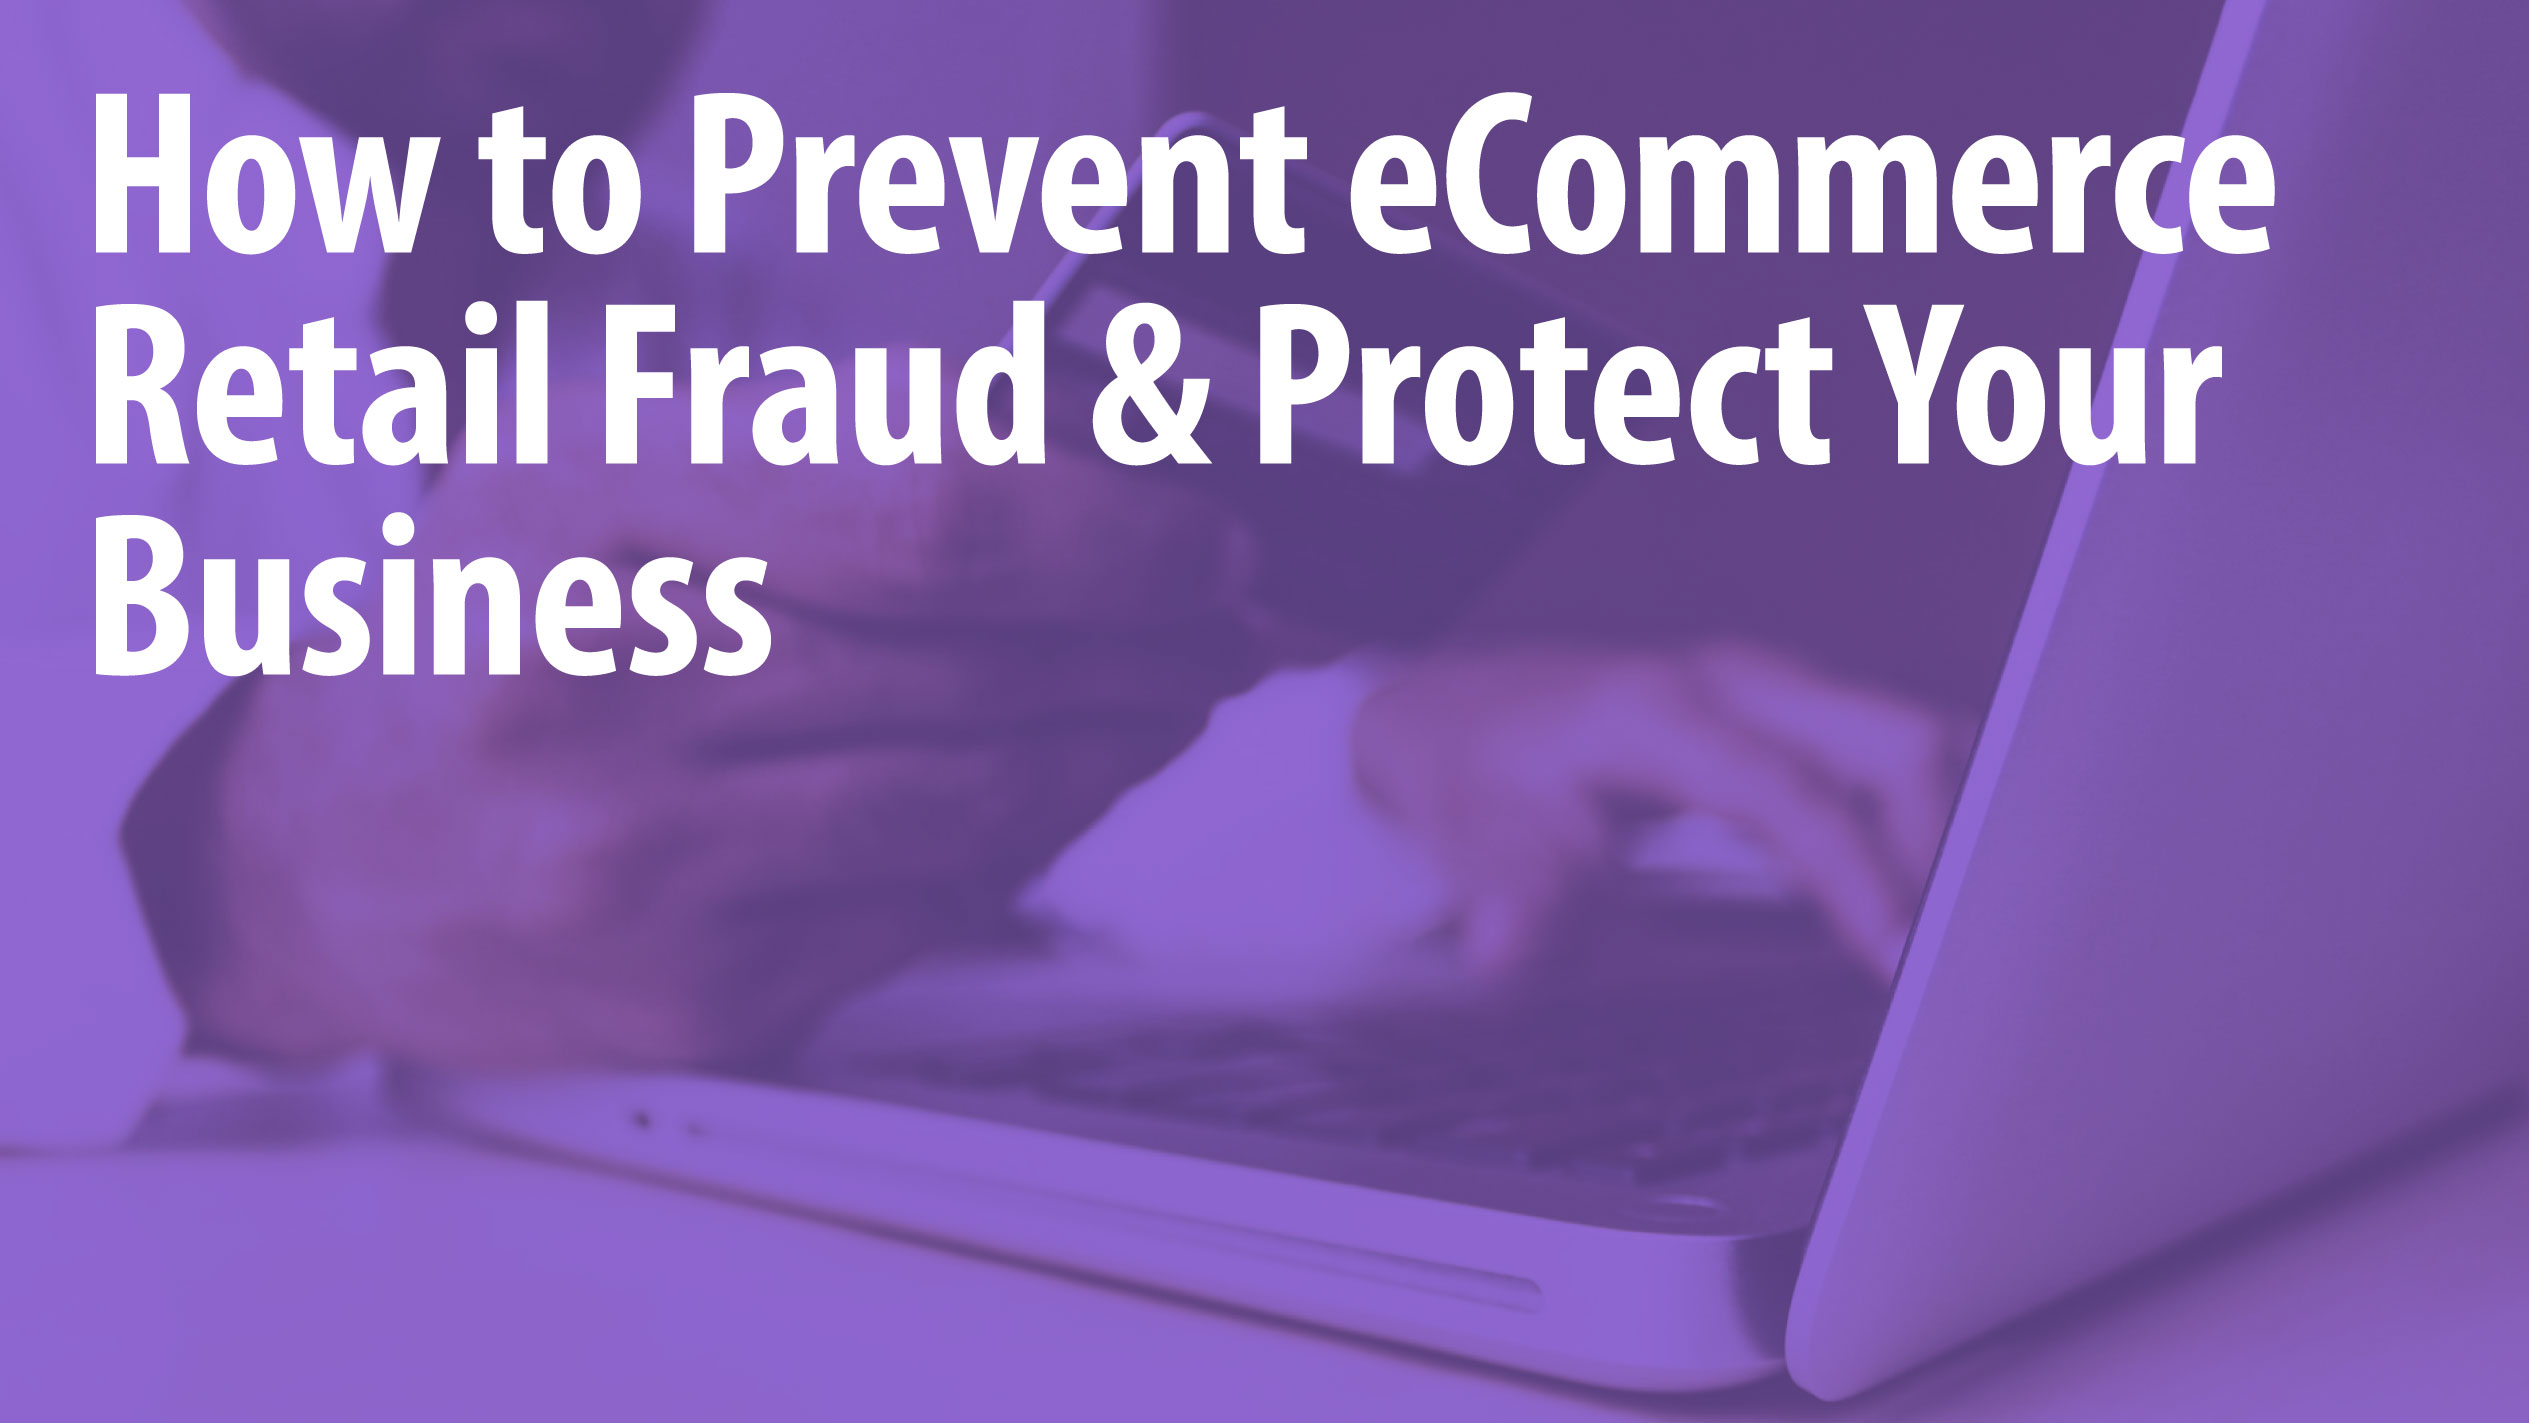 How to Prevent eCommerce Retail Fraud & Protect Your Business